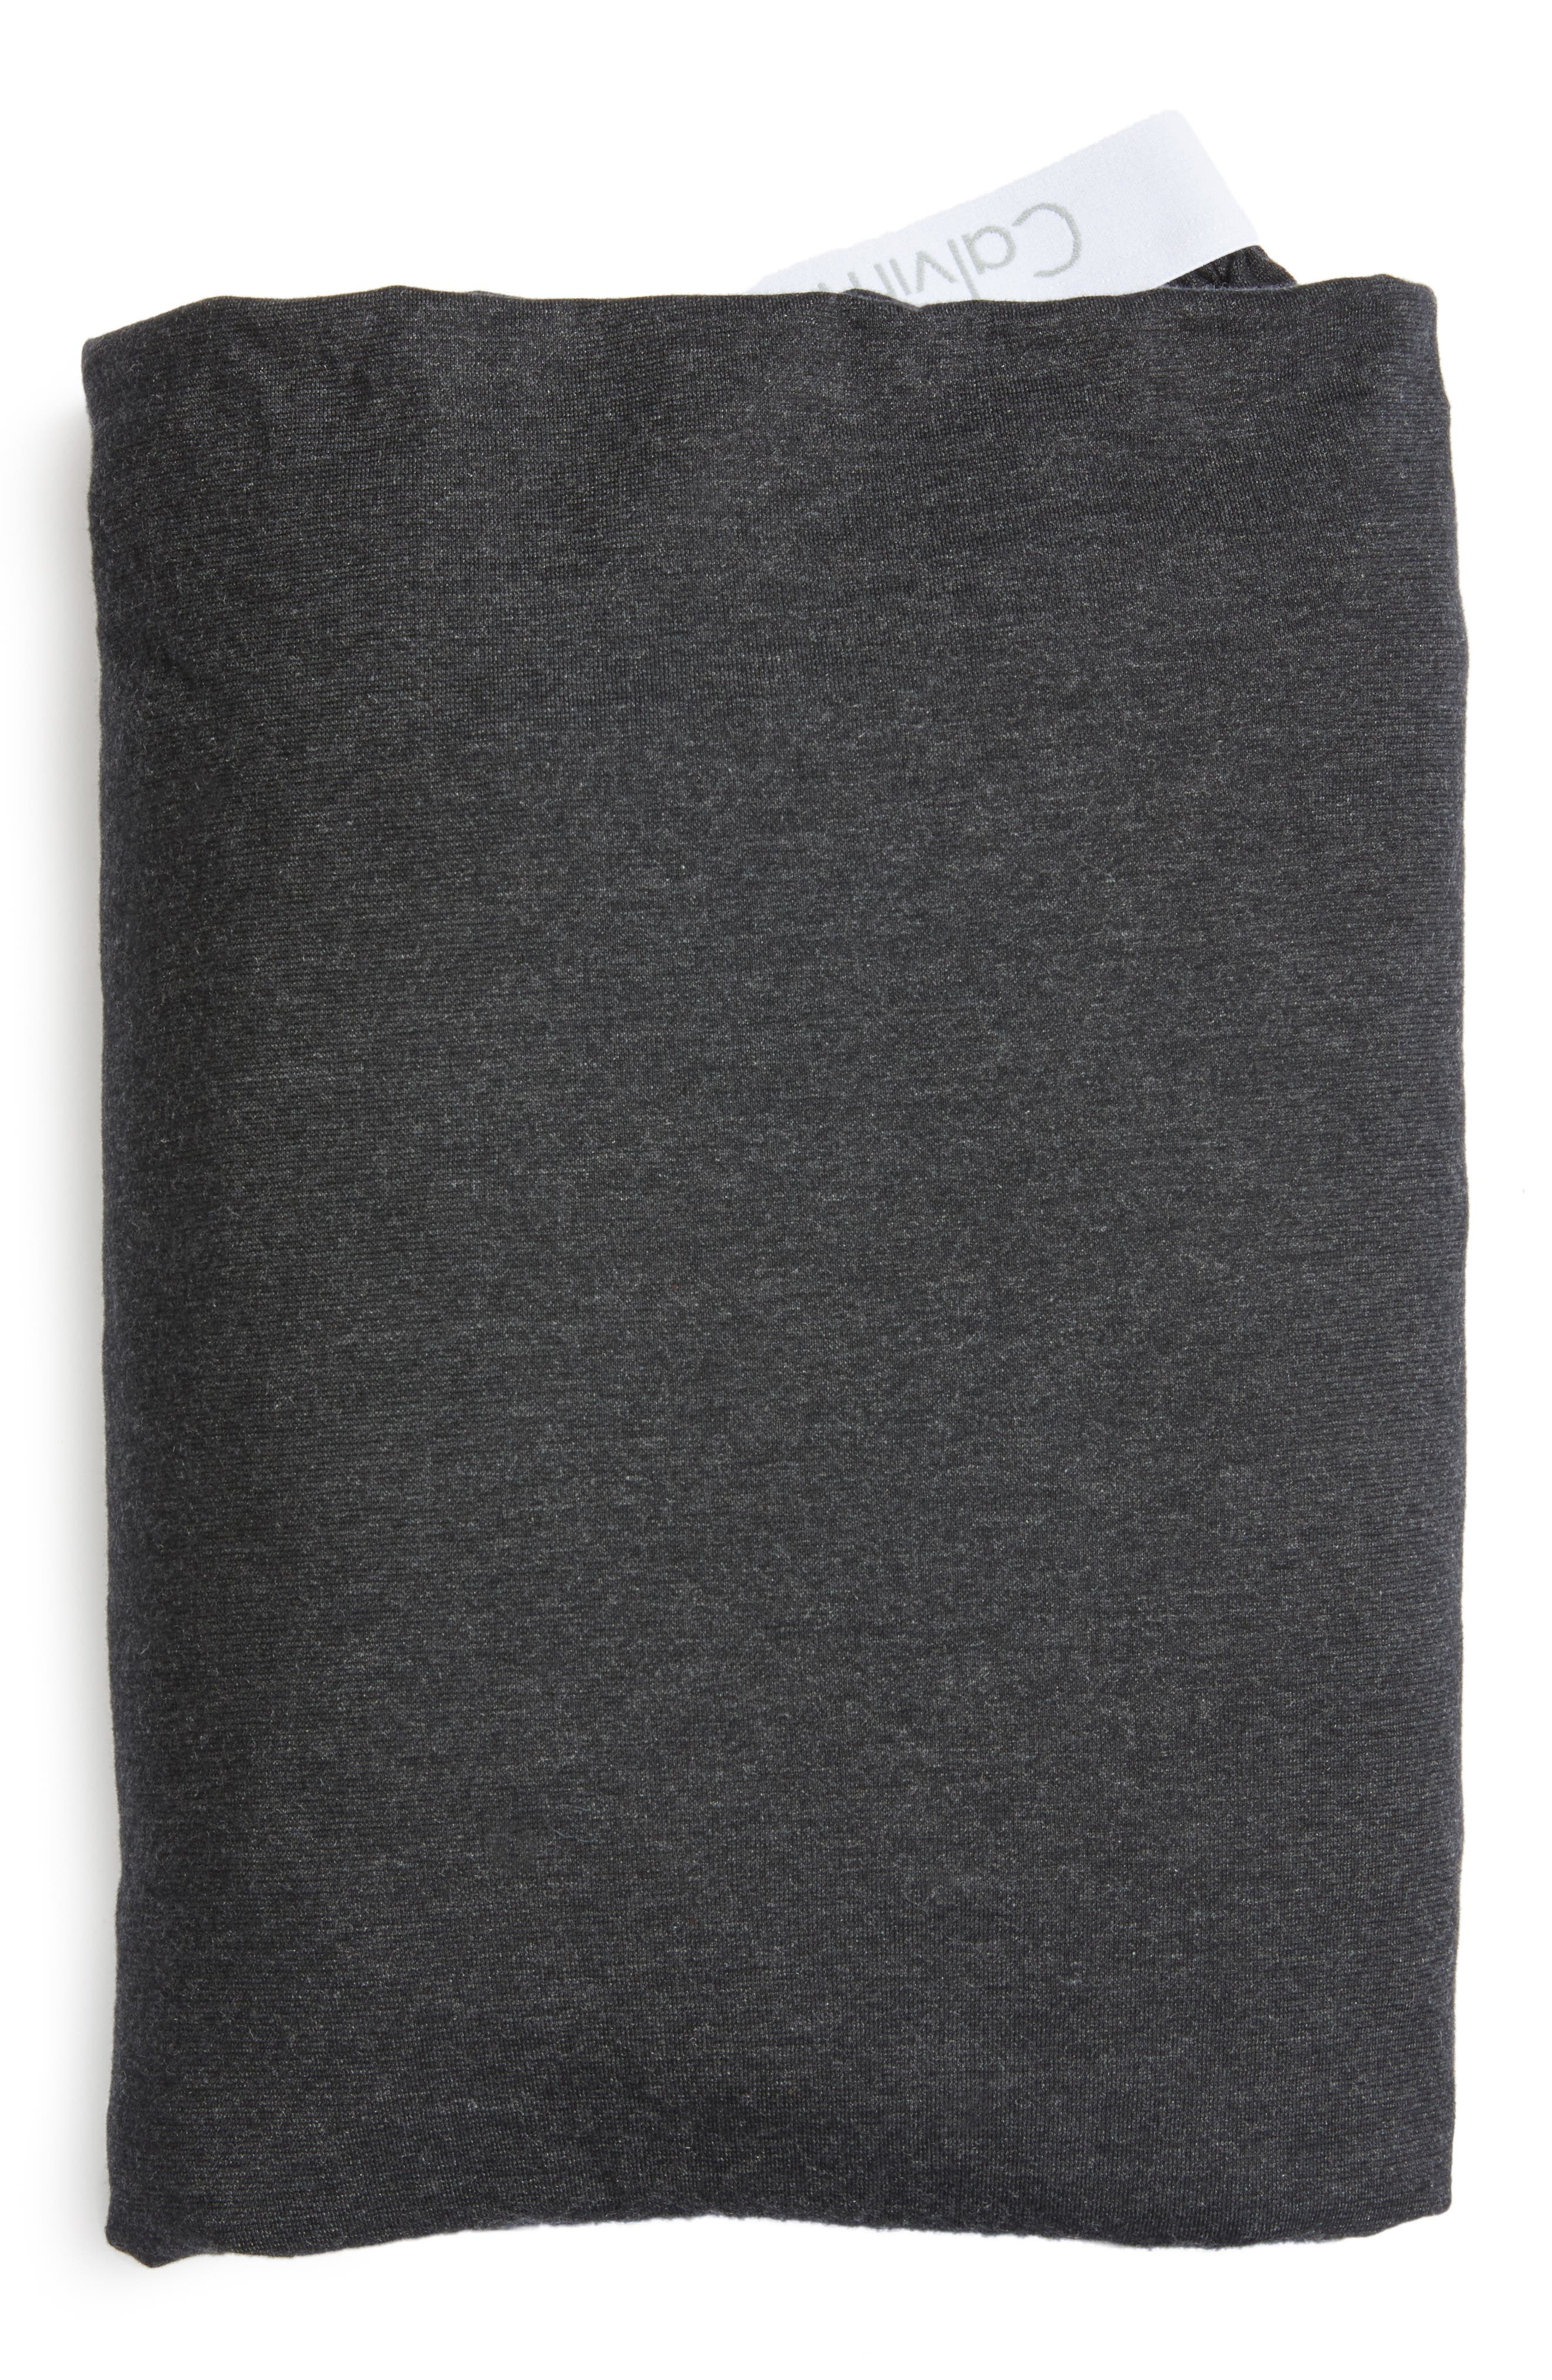 Main Image - Calvin Klein Home Cotton & Modal Jersey Fitted Sheet